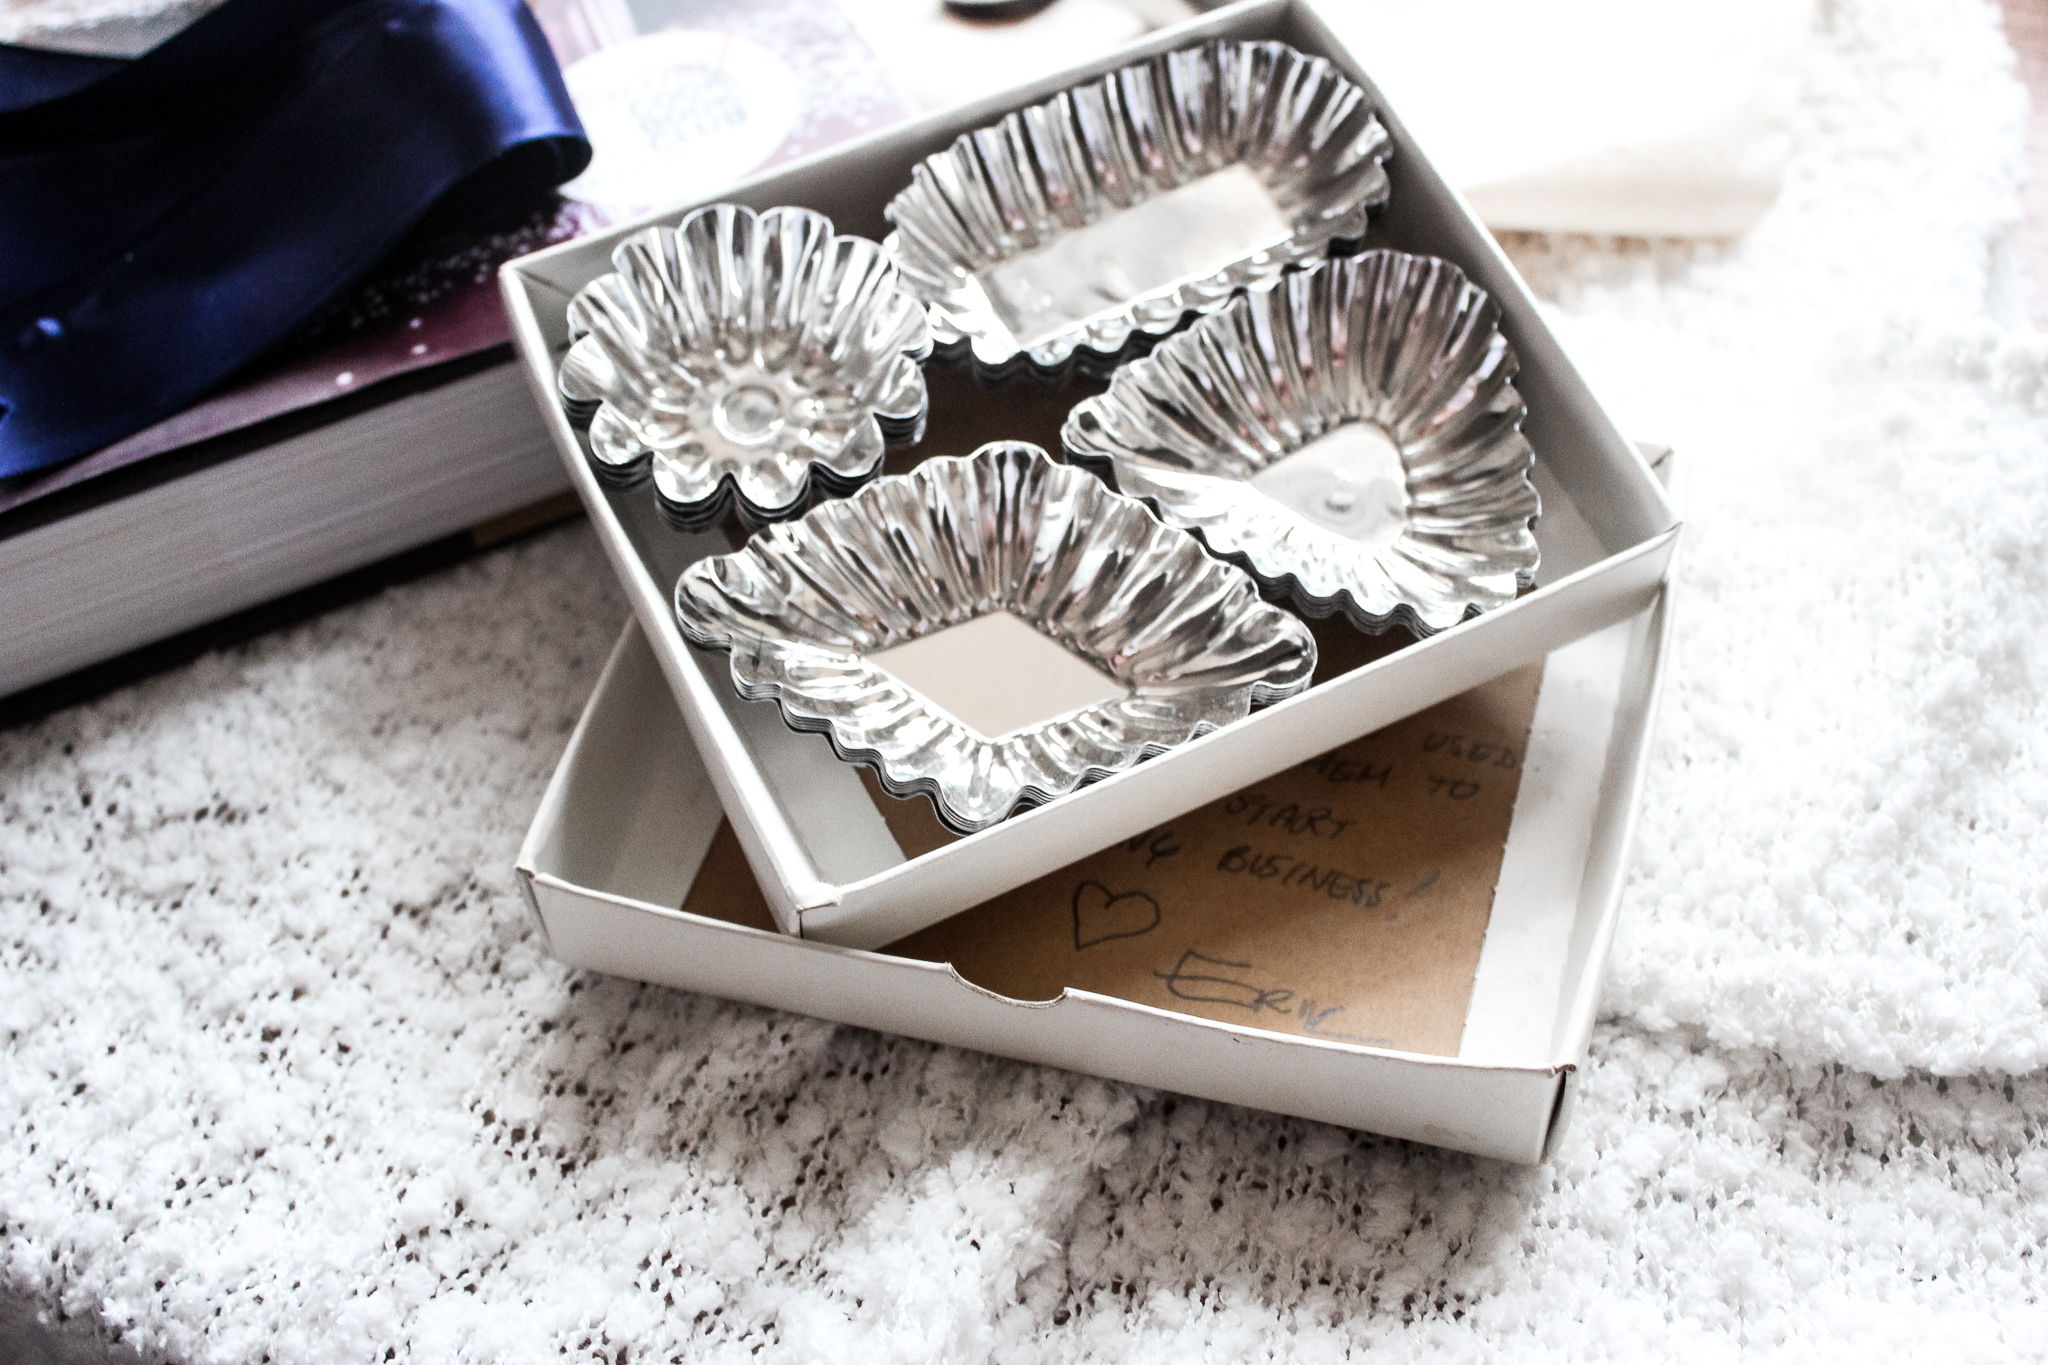 These tartlet pans were used by my friend Erik's great grandmother in her bakery in New York!